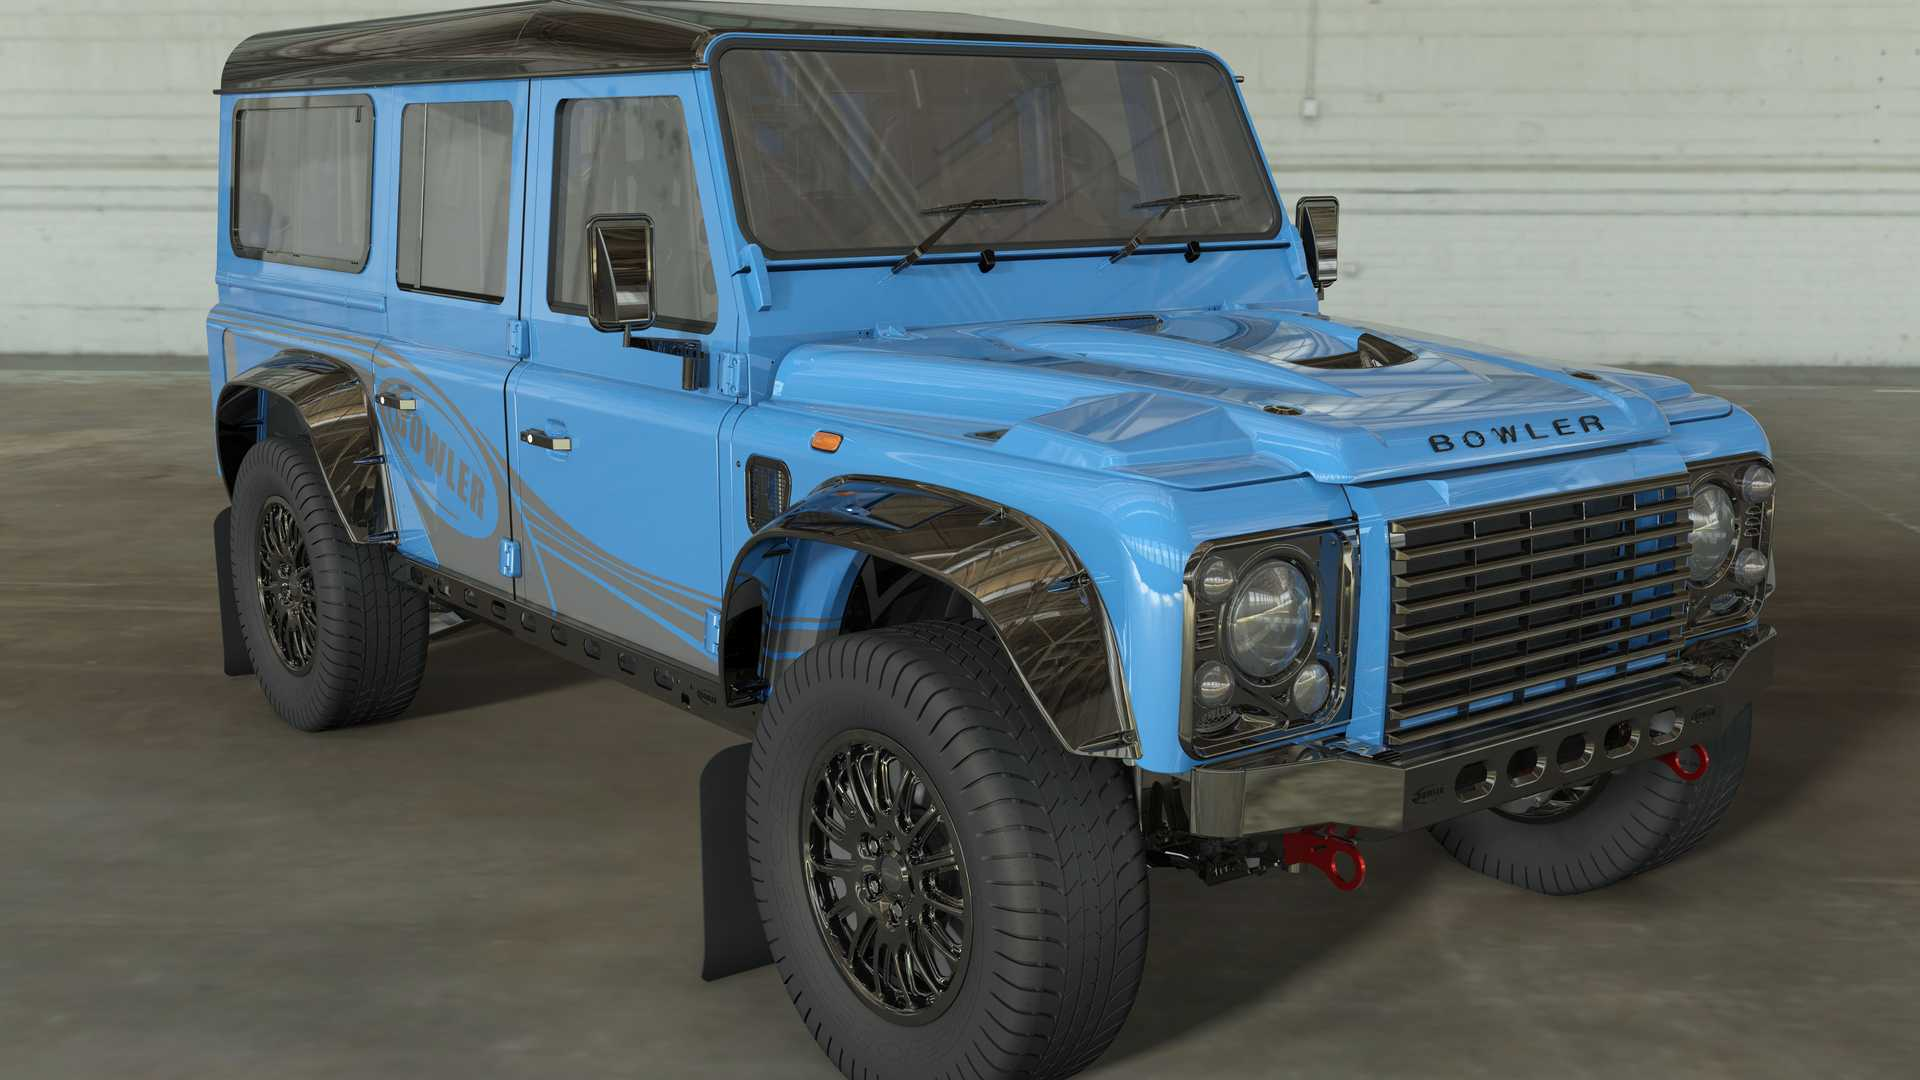 Old Land Rover Defender By Bowler Packs Supercharged V8 With 567 HP